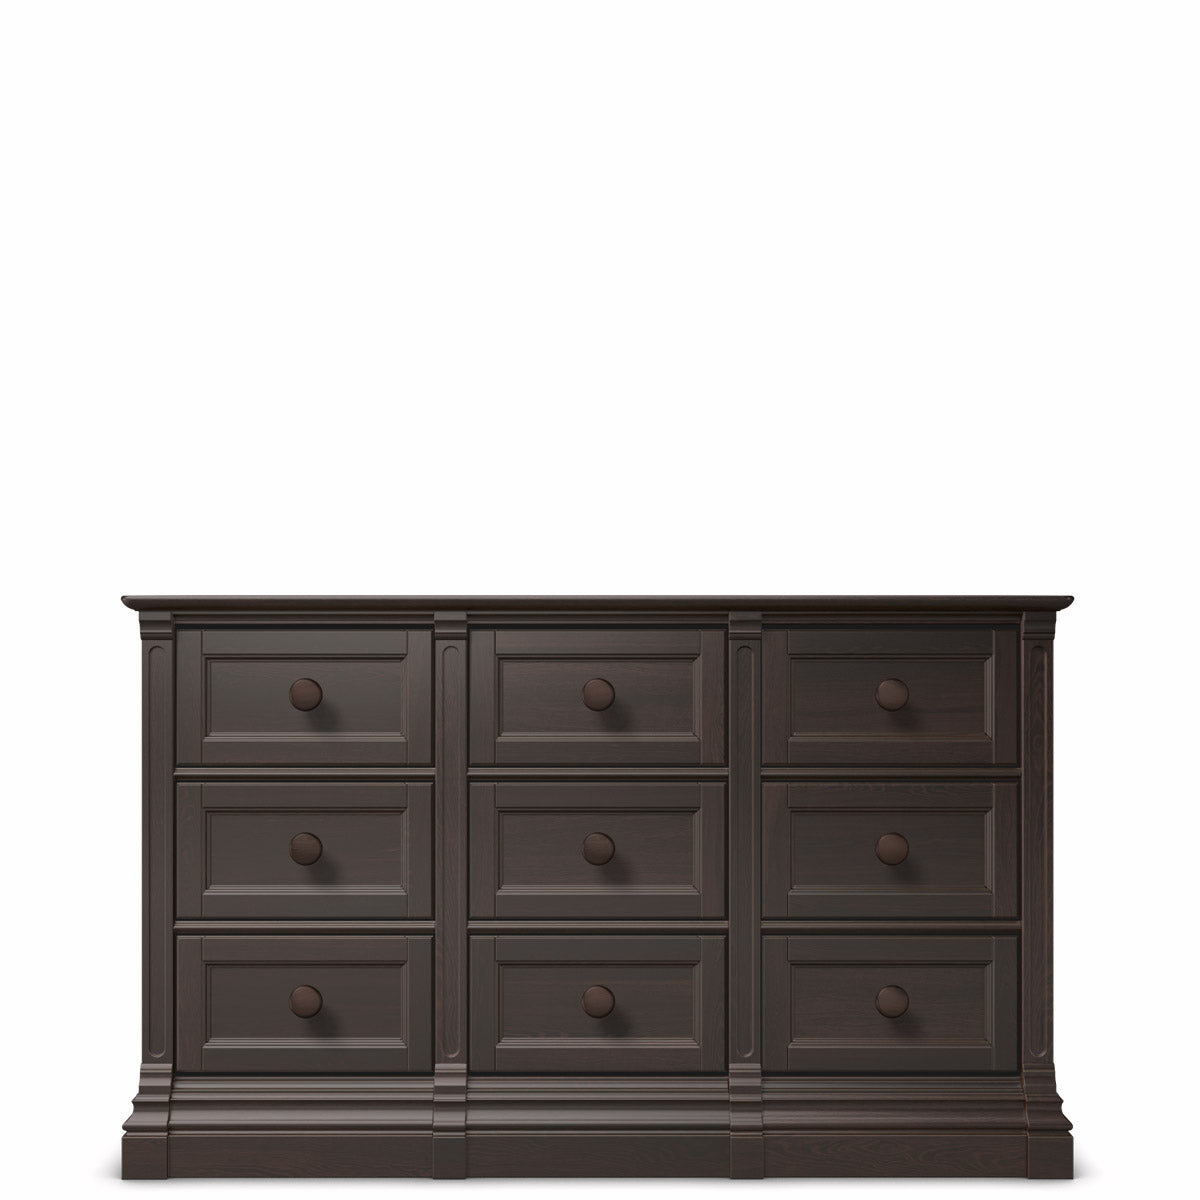 Romina Imperio Nine Drawers Dresser